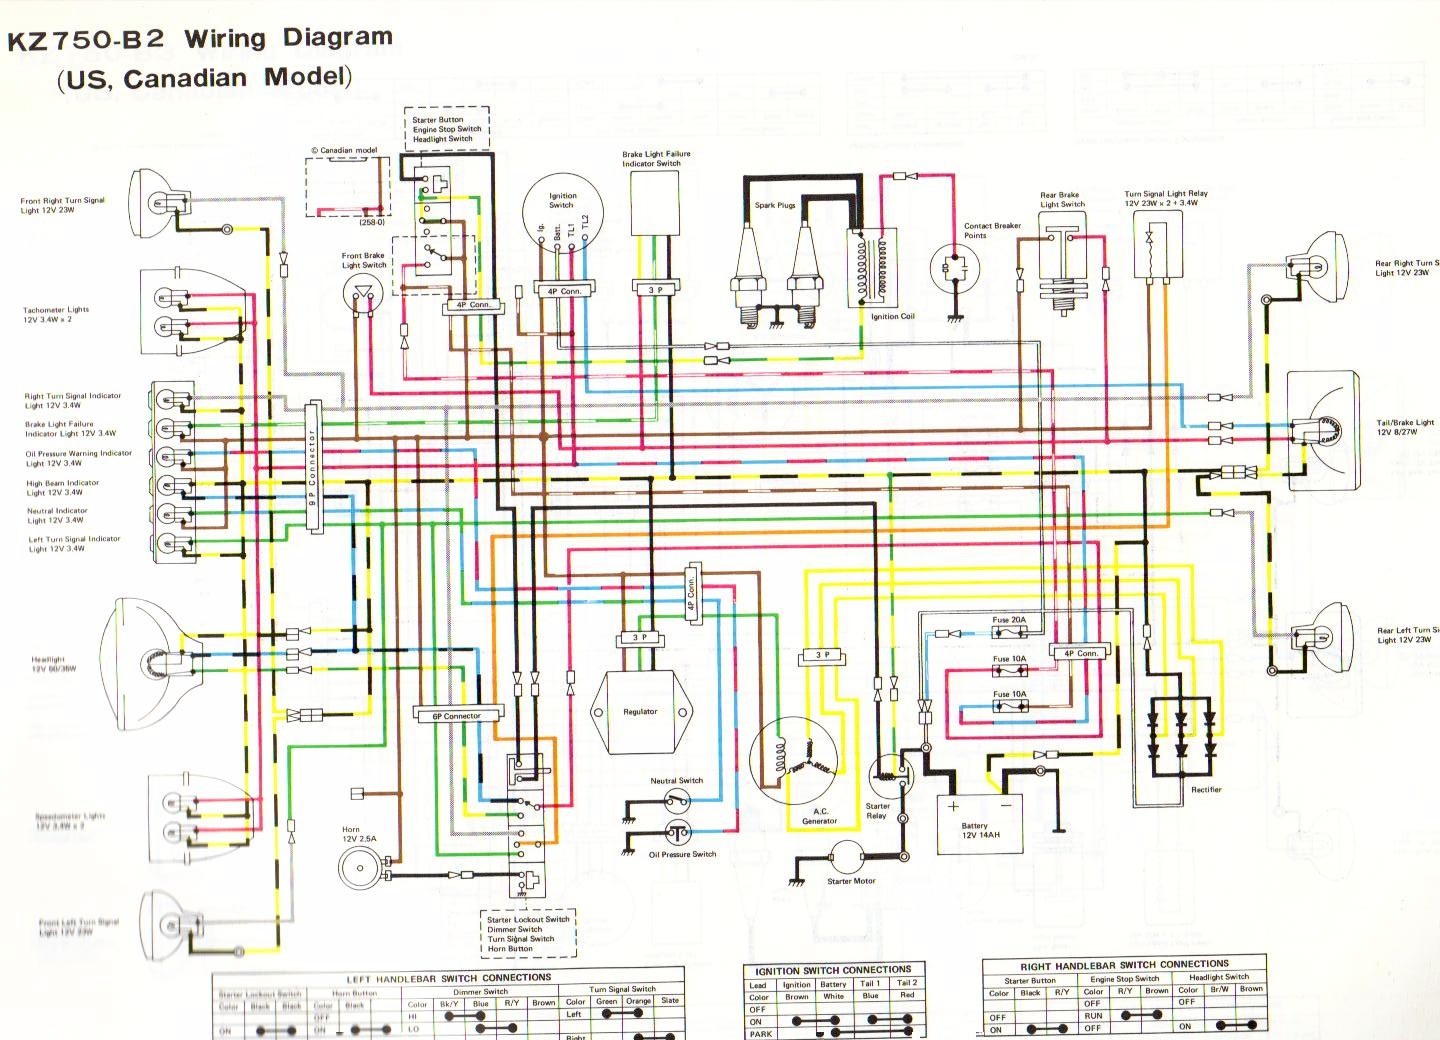 1978 Kawasaki Kz1000 Wiring Diagram For Free Z1000 1978kz1000a2aus D 7 Together With Ka0107001010 Kz650 B2a Further In Addition B Additionally